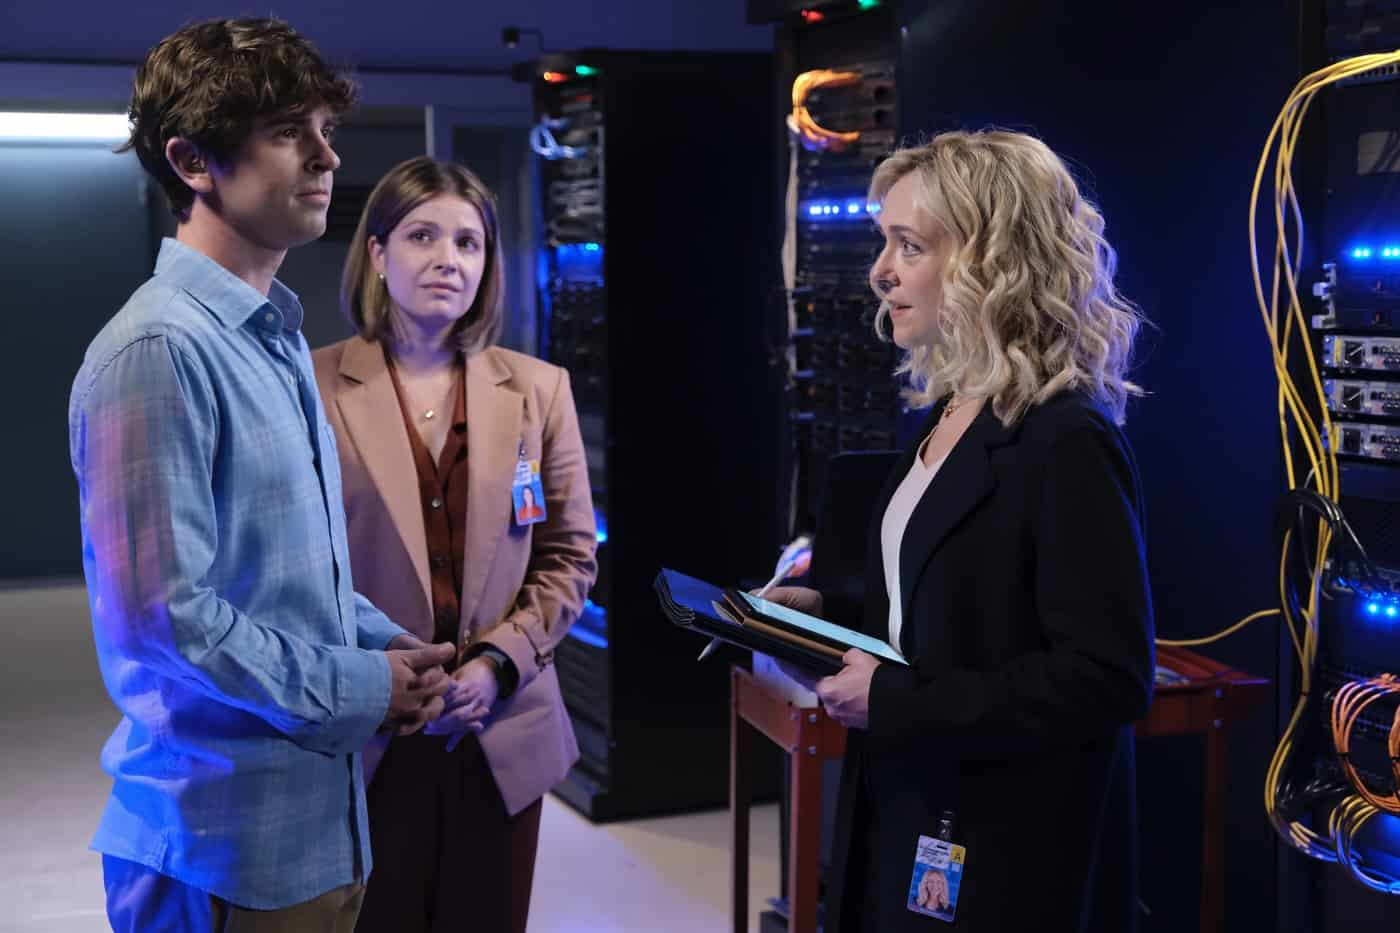 """THE GOOD DOCTOR Season 5 Episode 3 - """"Measure of Intelligence"""" – Shaun confronts Salen (Rachel Bay Jones) about the many changes she has implemented since coming on at St. Bonaventure, and Glassman is forced to accept his new role at the hospital on an all-new """"The Good Doctor,"""" MONDAY, OCT. 11 (10:00-11:00 p.m. EDT), on ABC. (ABC/Jeff Weddell) FREDDIE HIGHMORE, PAIGE SPARA, RACHEL BAY JONES"""